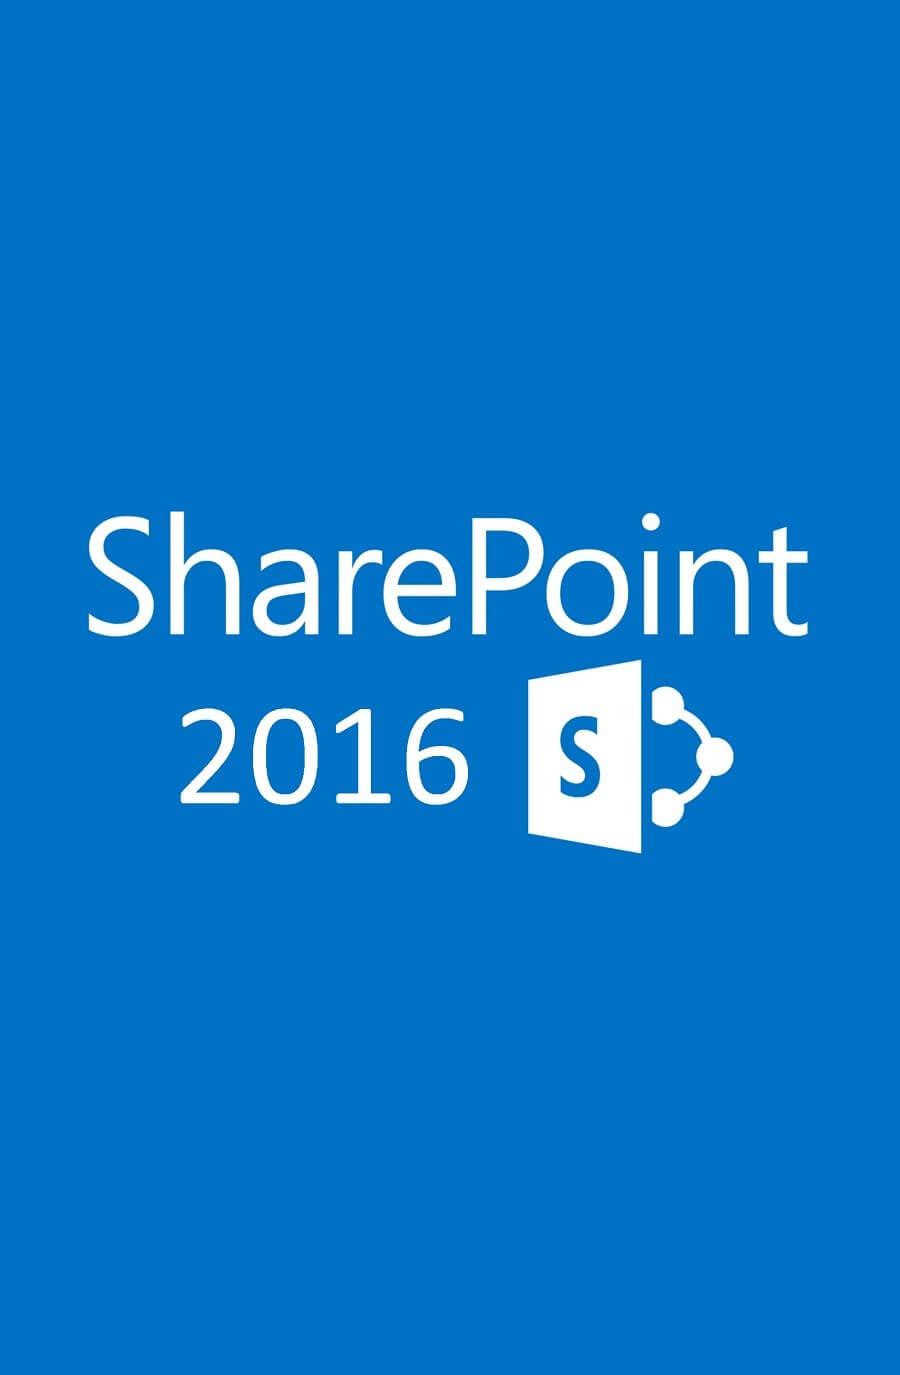 SharePoint Brisbane Consultant Developing Streamlined Solutions